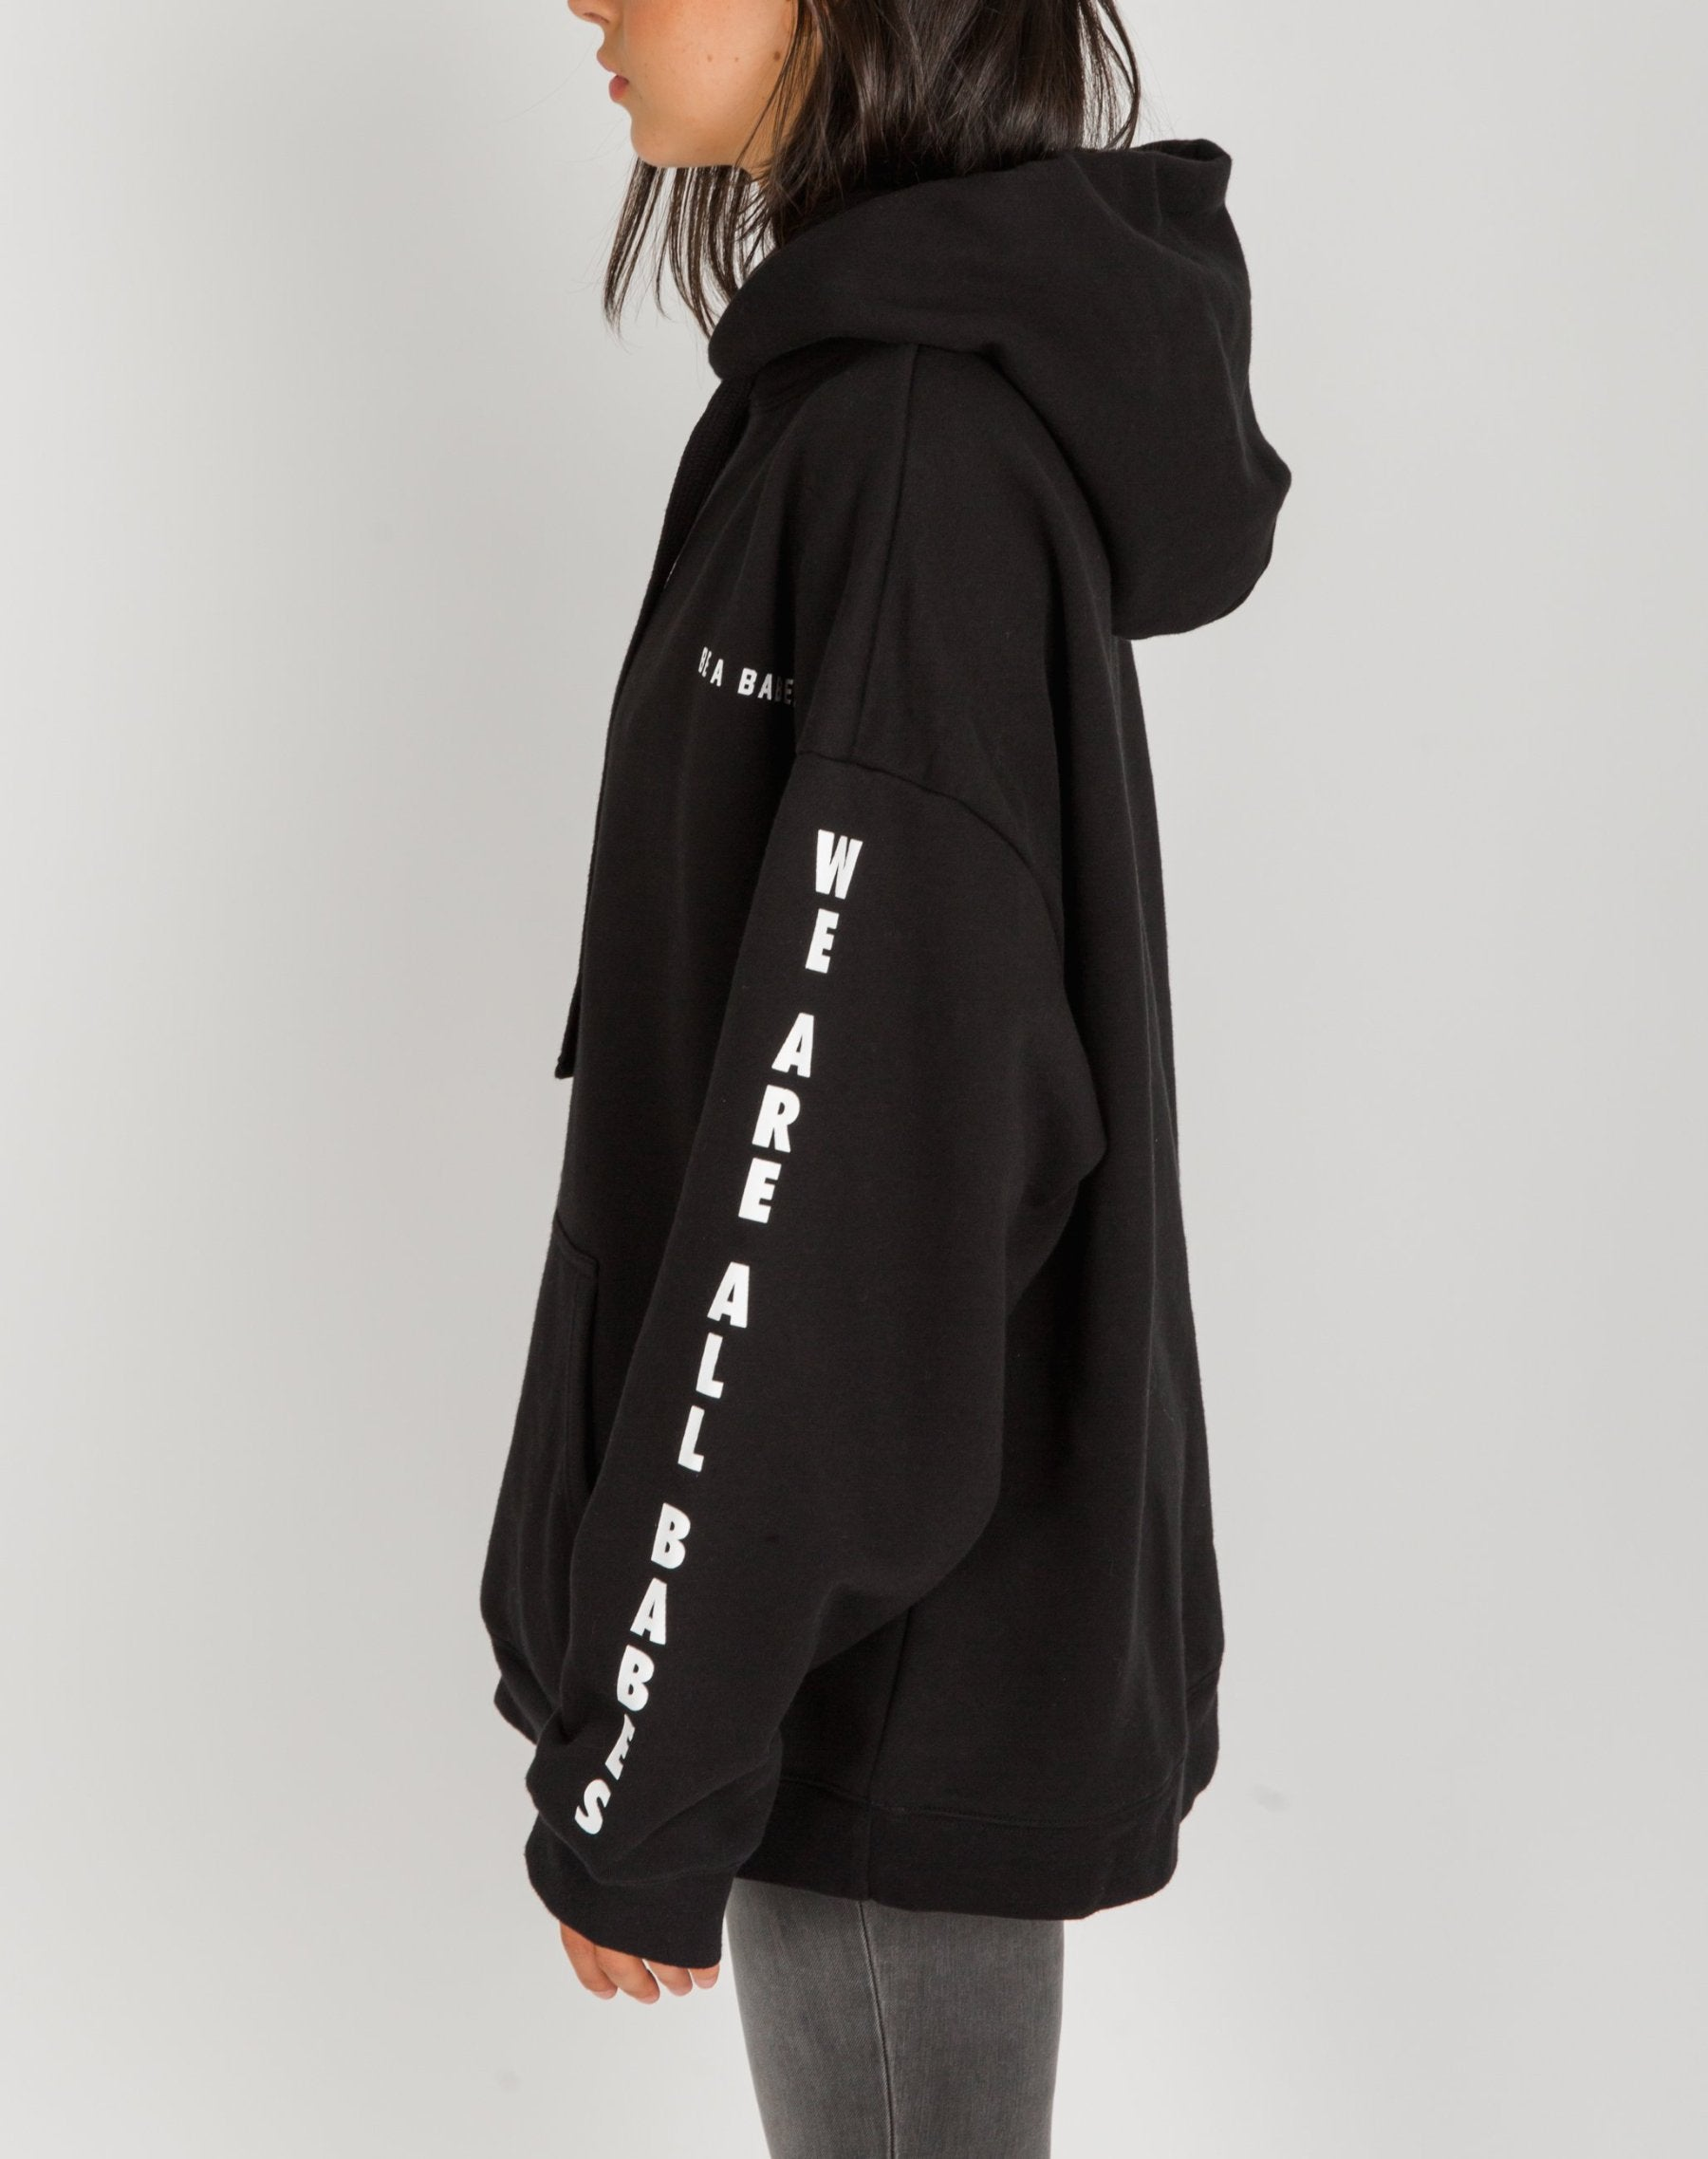 Side photo of the Be a Babe big sister hoodie in black by Brunette the Label.